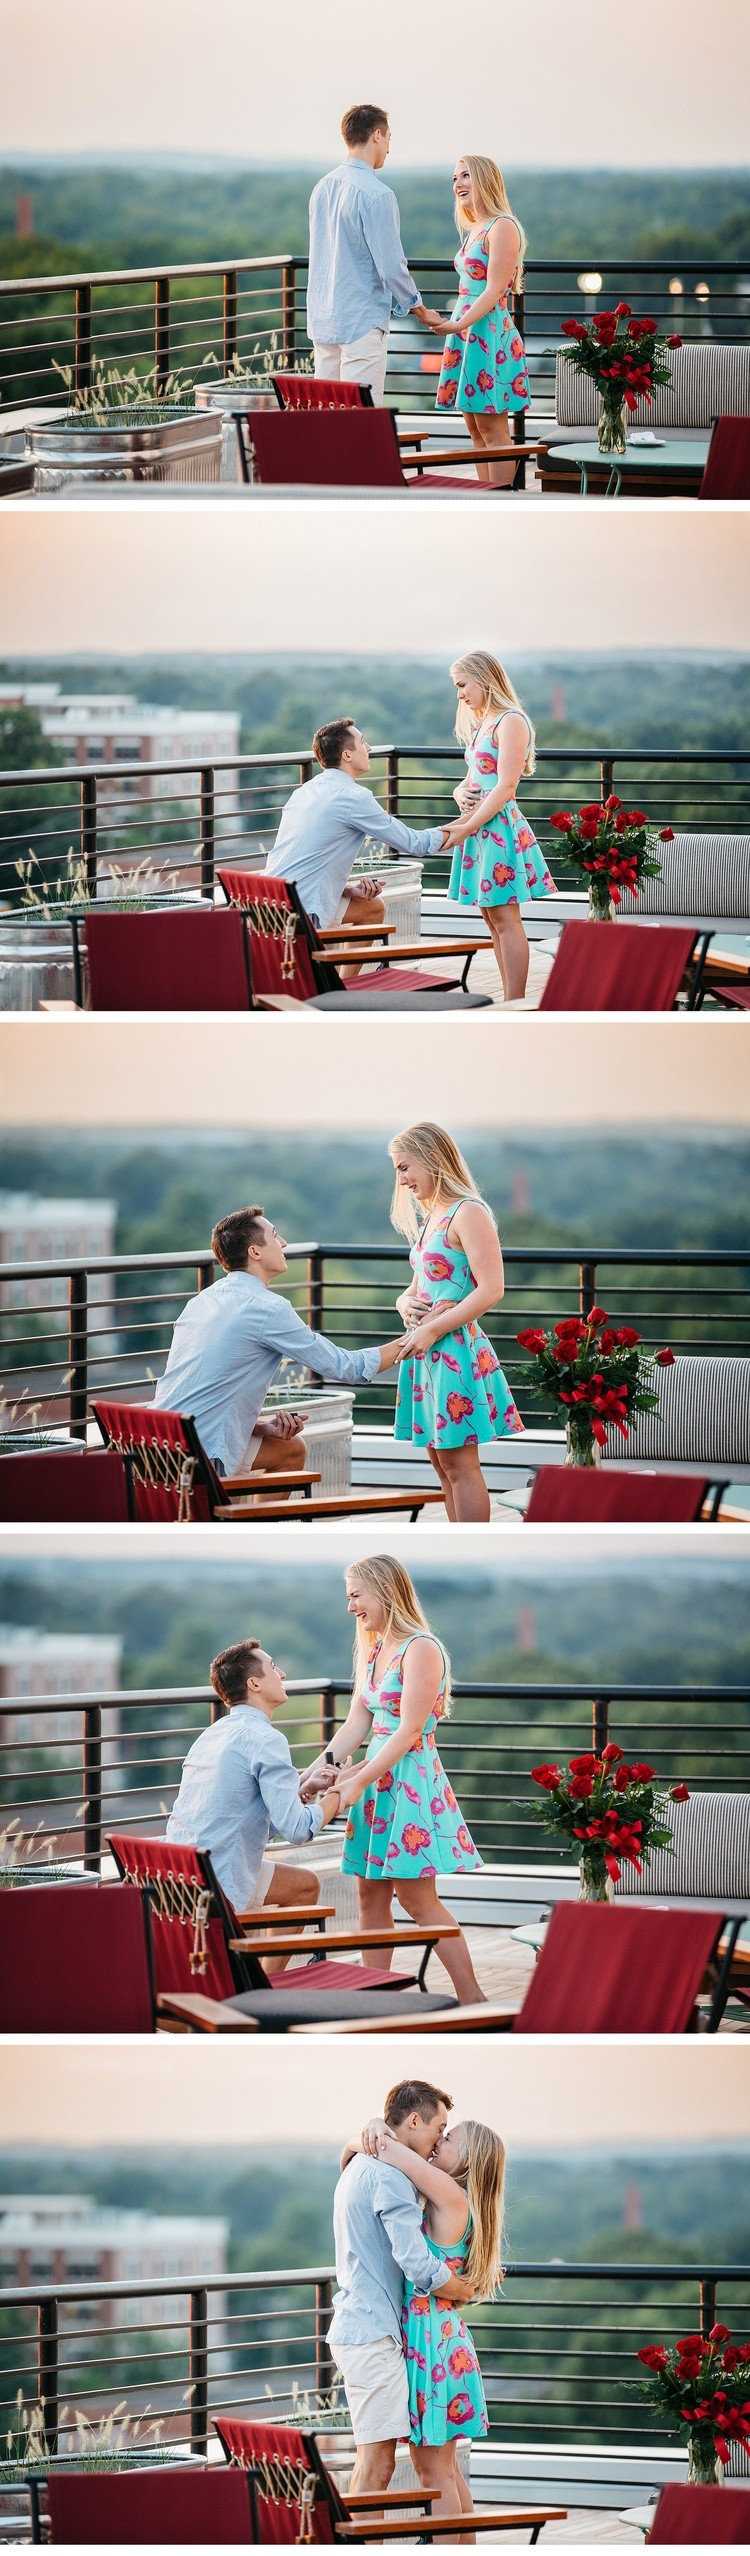 Image 3 of Surprise Rooftop Marriage Proposal in Durham, North Carolina